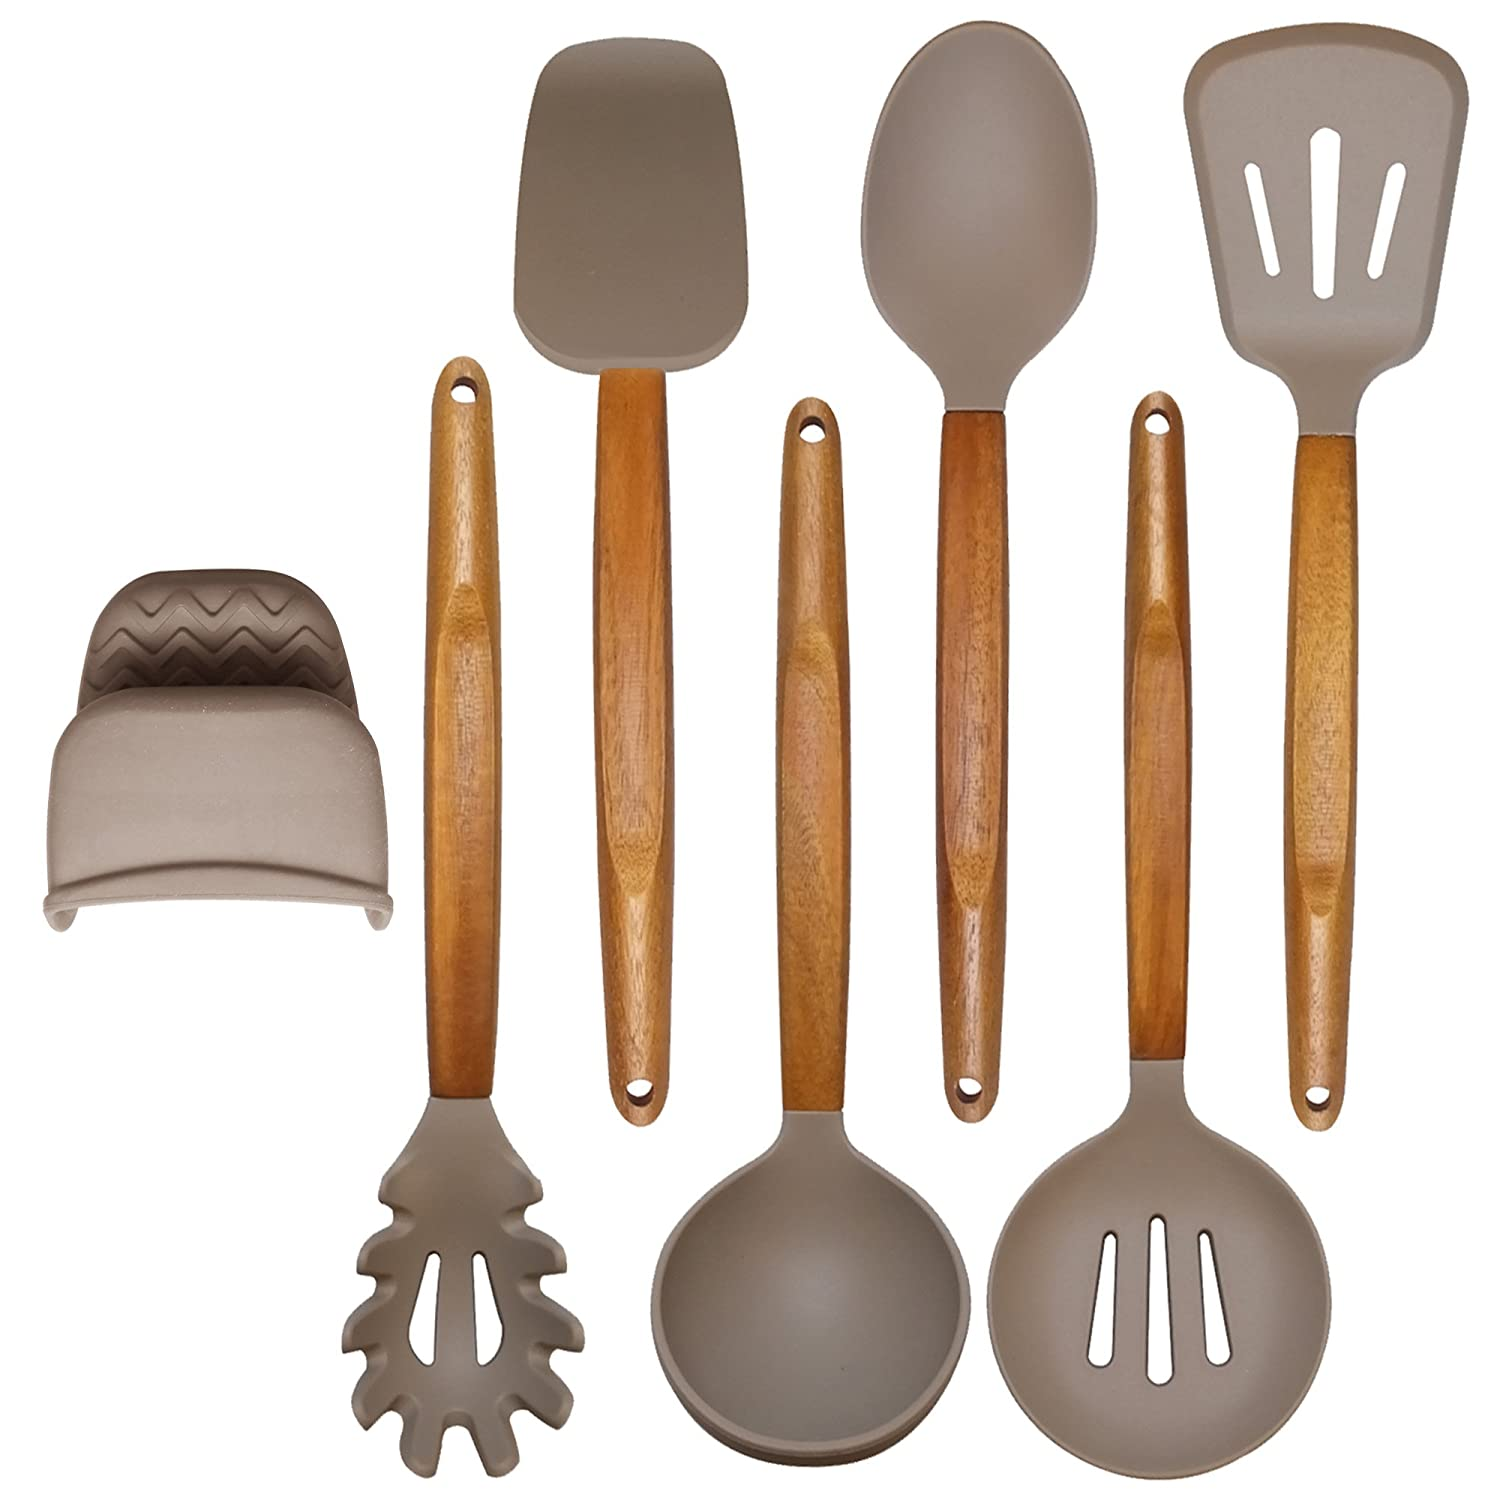 Adtoprime Silicone Cooking Utensils Set Acacia Wooden Handle - Kitchen Utensil Tools Serving Spoons